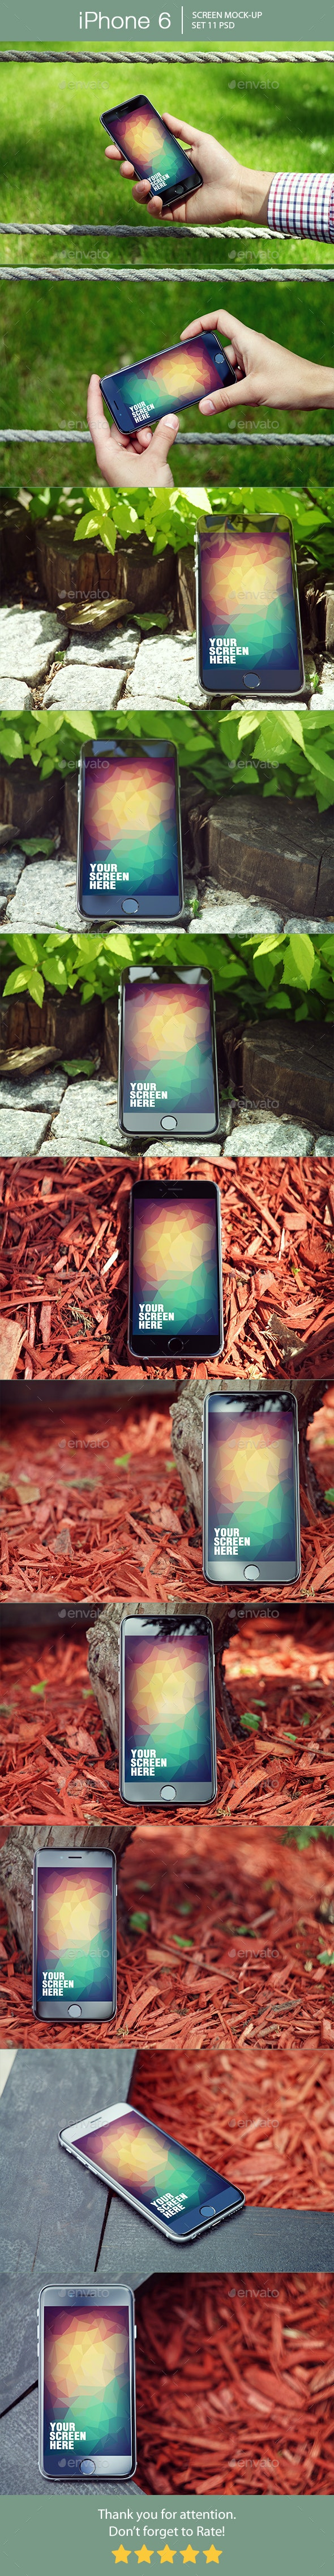 iPhone 6 Screen Mockup - Mobile Displays